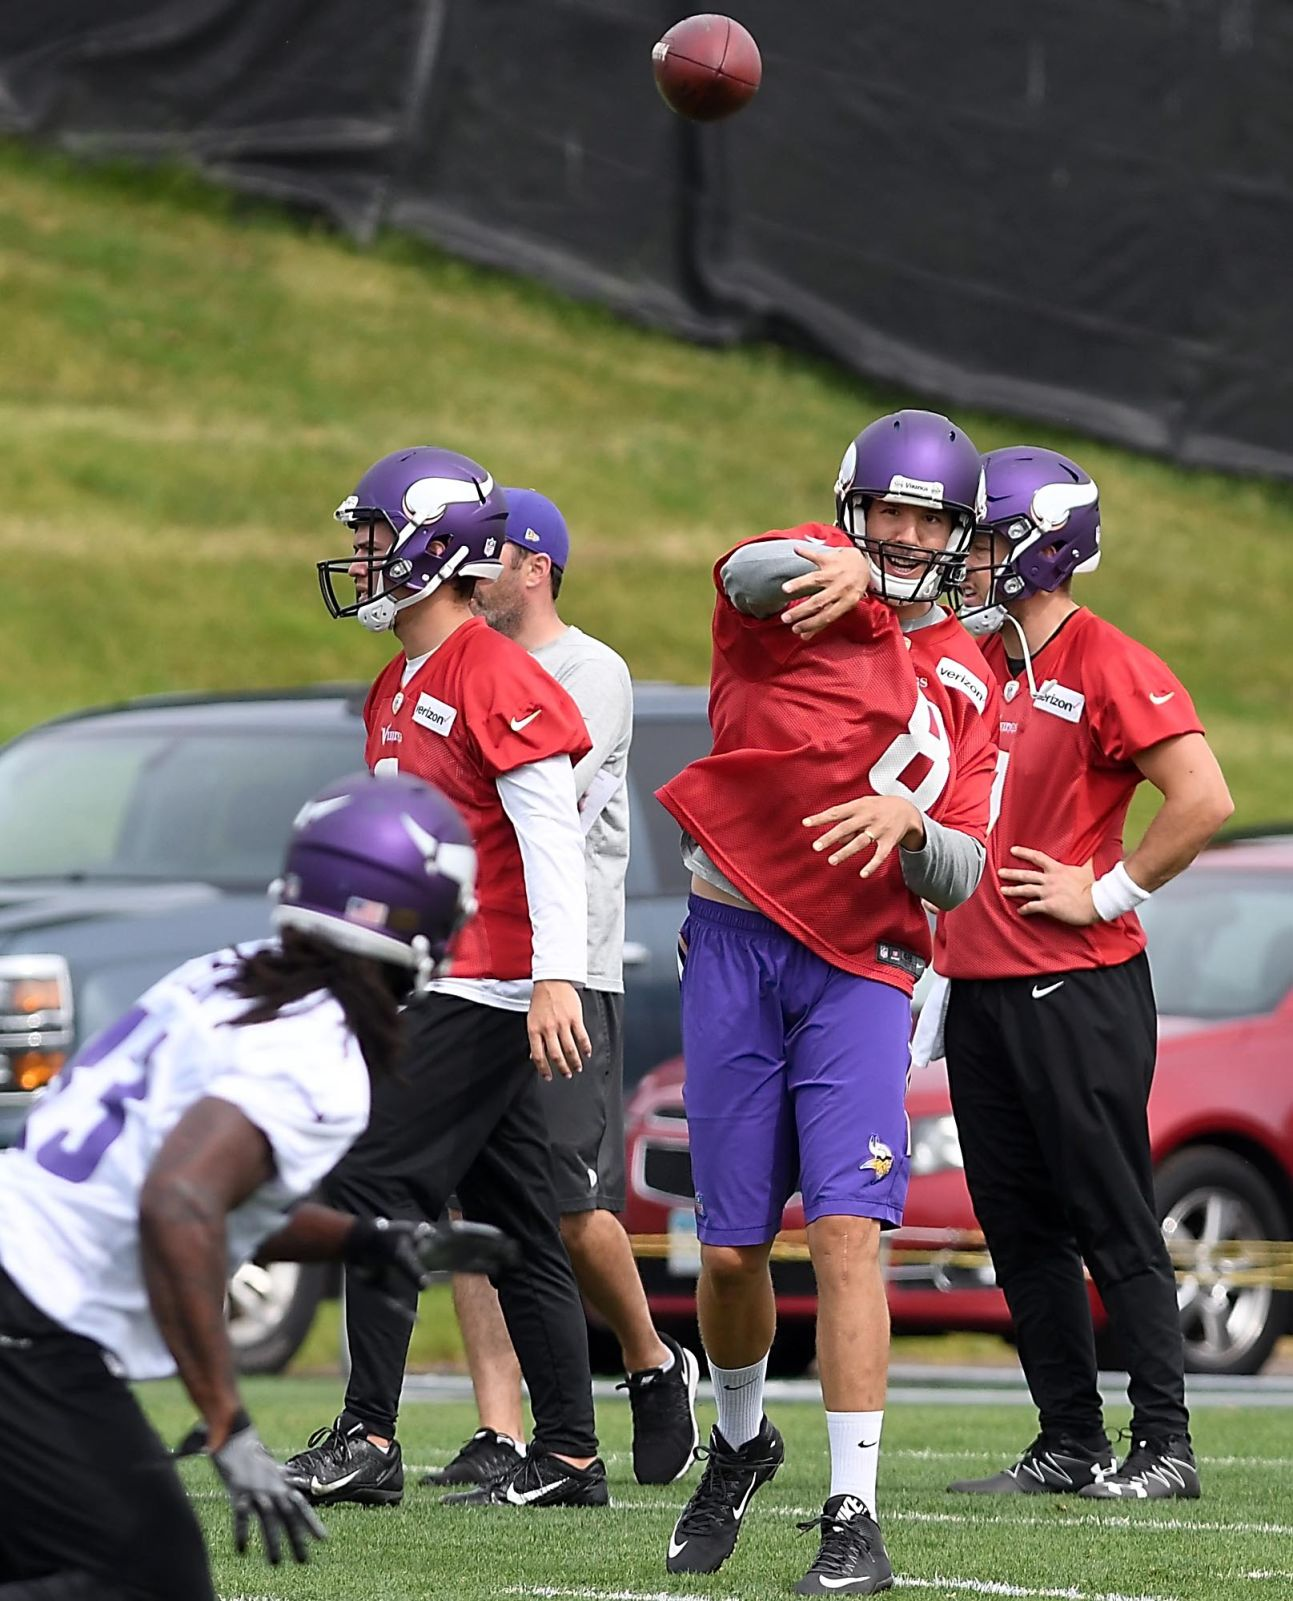 Mike Zimmer expects Teddy Bridgewater to start Vikings' camp on PUP list